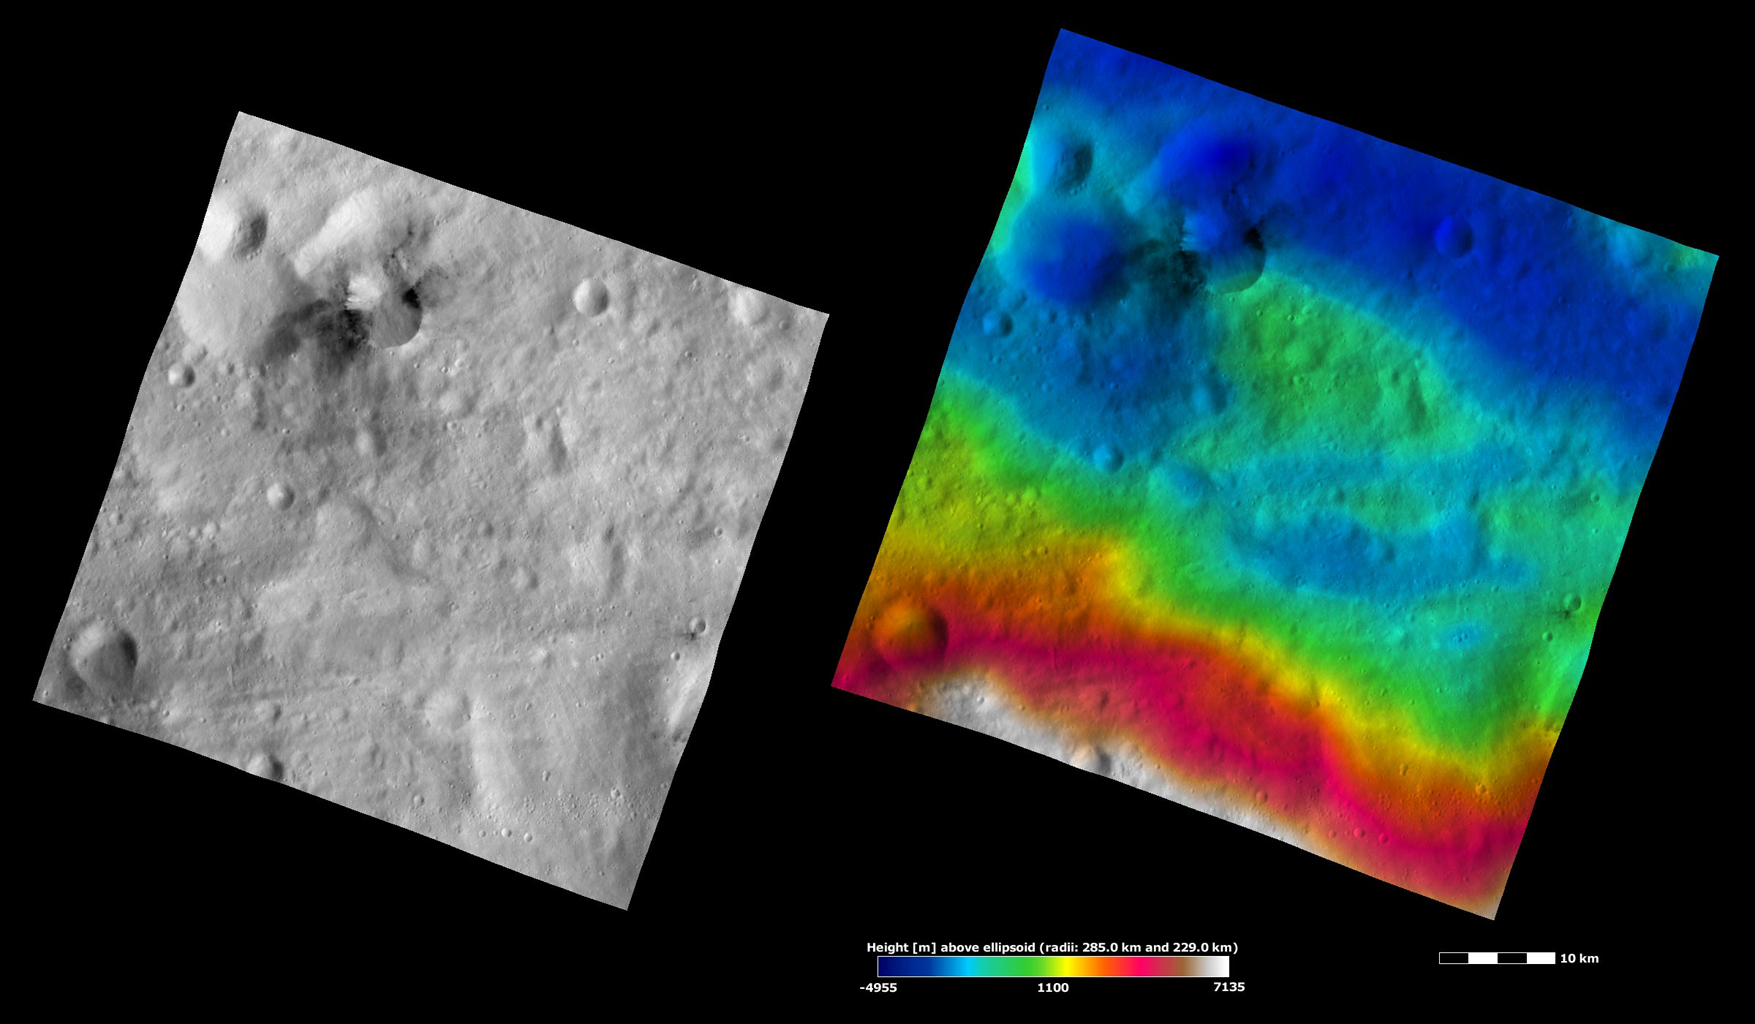 These apparent brightness and topography images from NASA's Dawn spacecraft are located in asteroid Vesta's Gegania quadrangle, in Vesta's southern hemisphere.